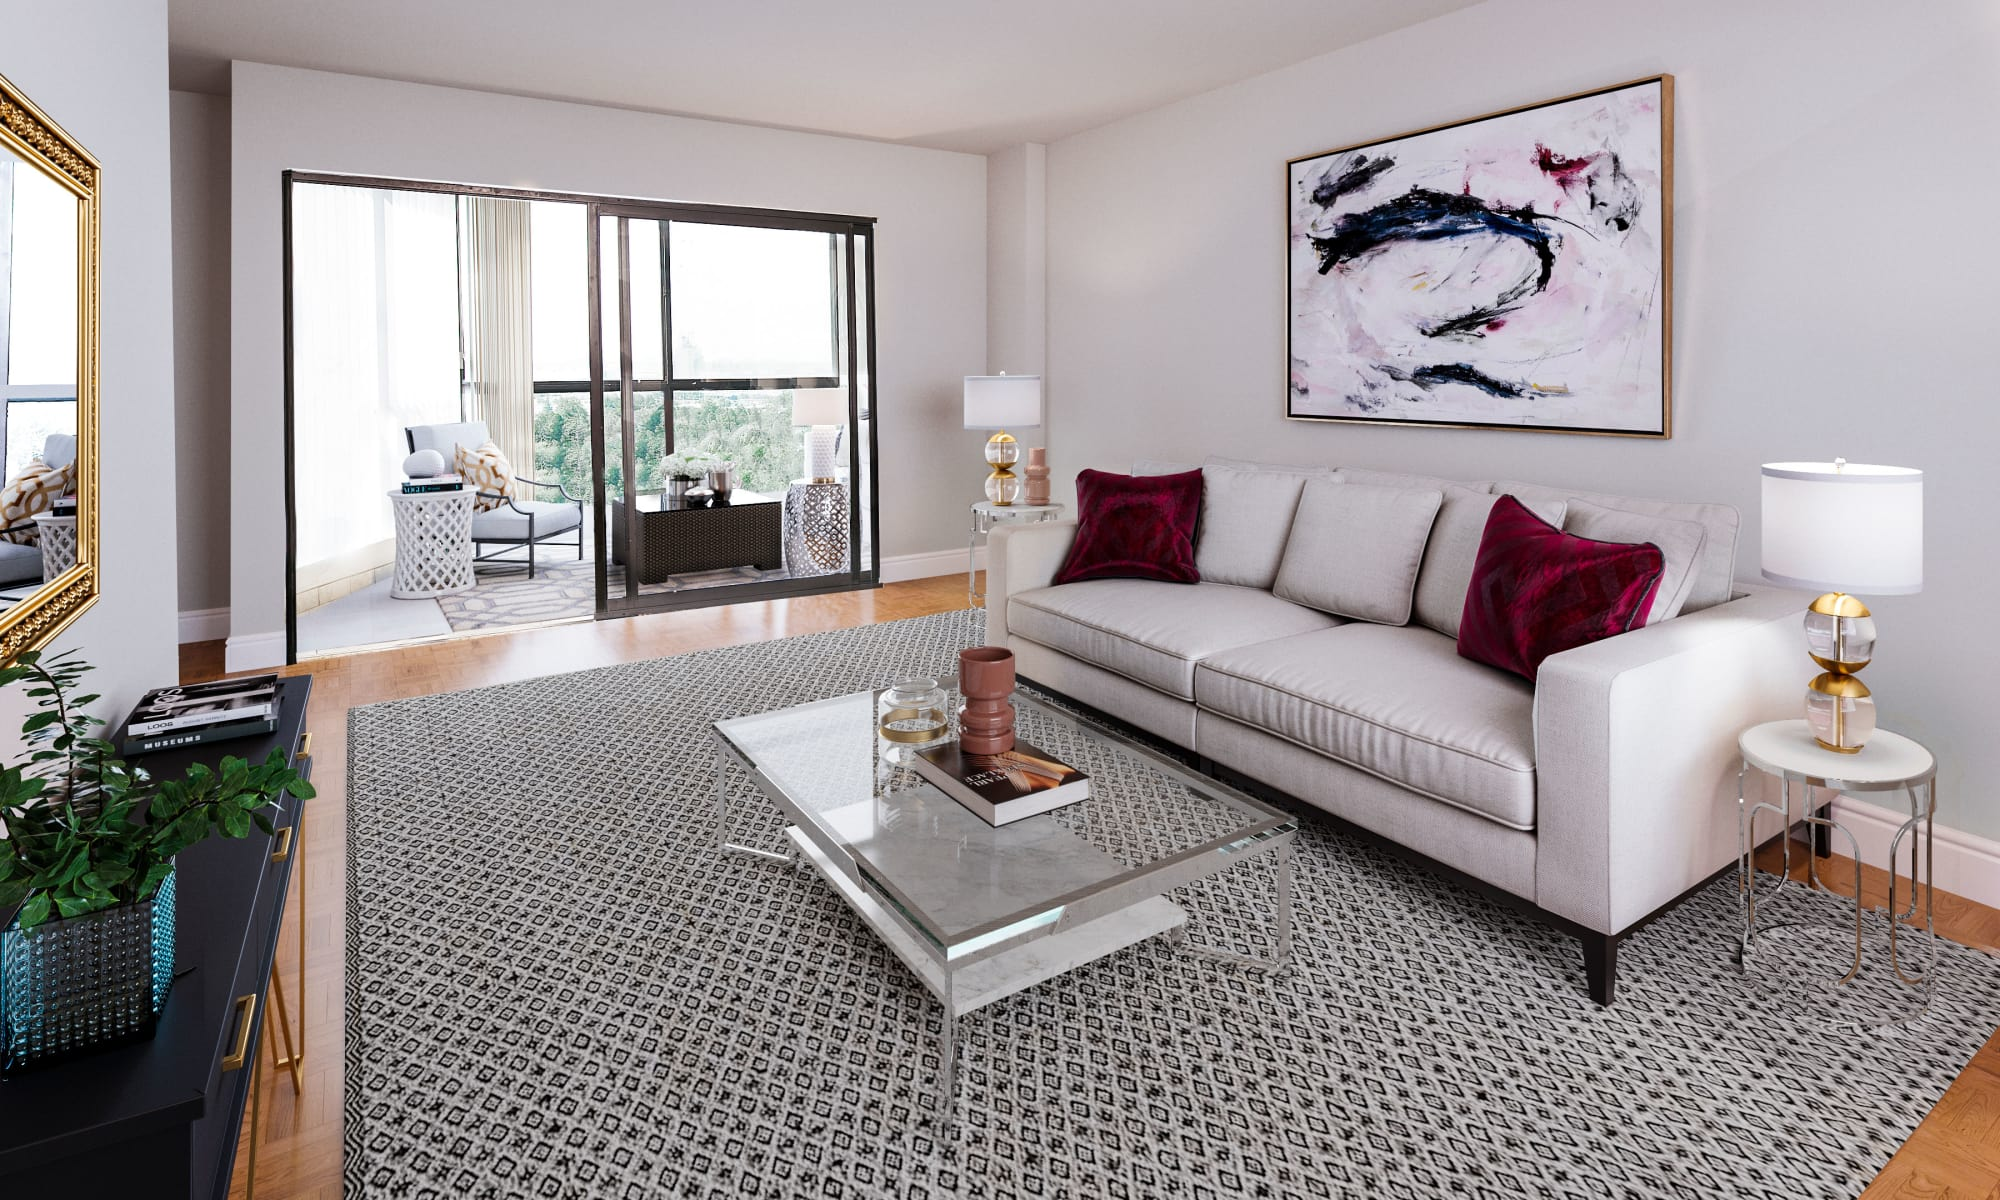 8 Silver Maple Court offers a renovated living room in Brampton, ON